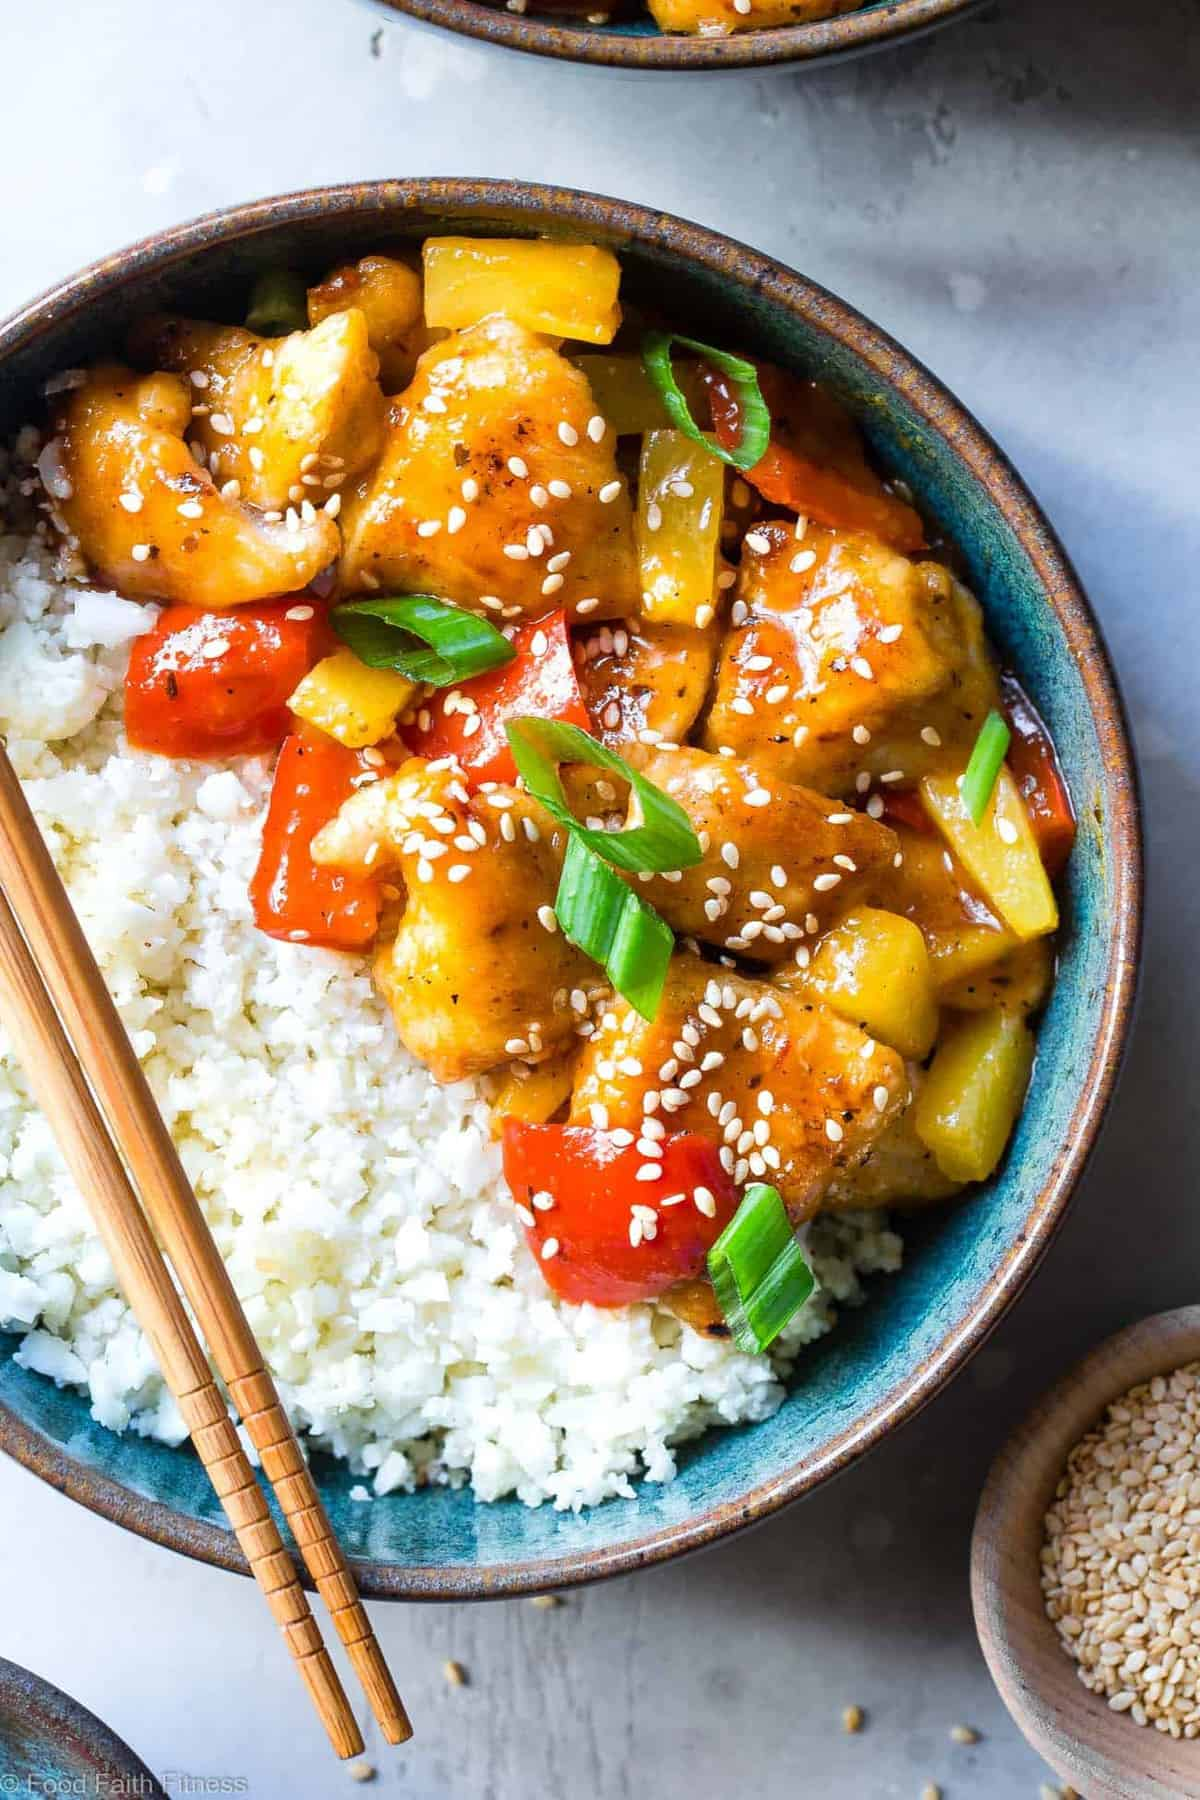 Gluten Free Whole30 Sweet and Sour Chicken - This paleo friendly, healthy sweet and sour chicken is so easy to make and tastes better than takeout and is WAY better for you! It's sugar/grain/gluten/dairy/egg free too! | #Foodfaithfitness | #Glutenfree #Paleo #Whole30 #Healthy #Sugarfree